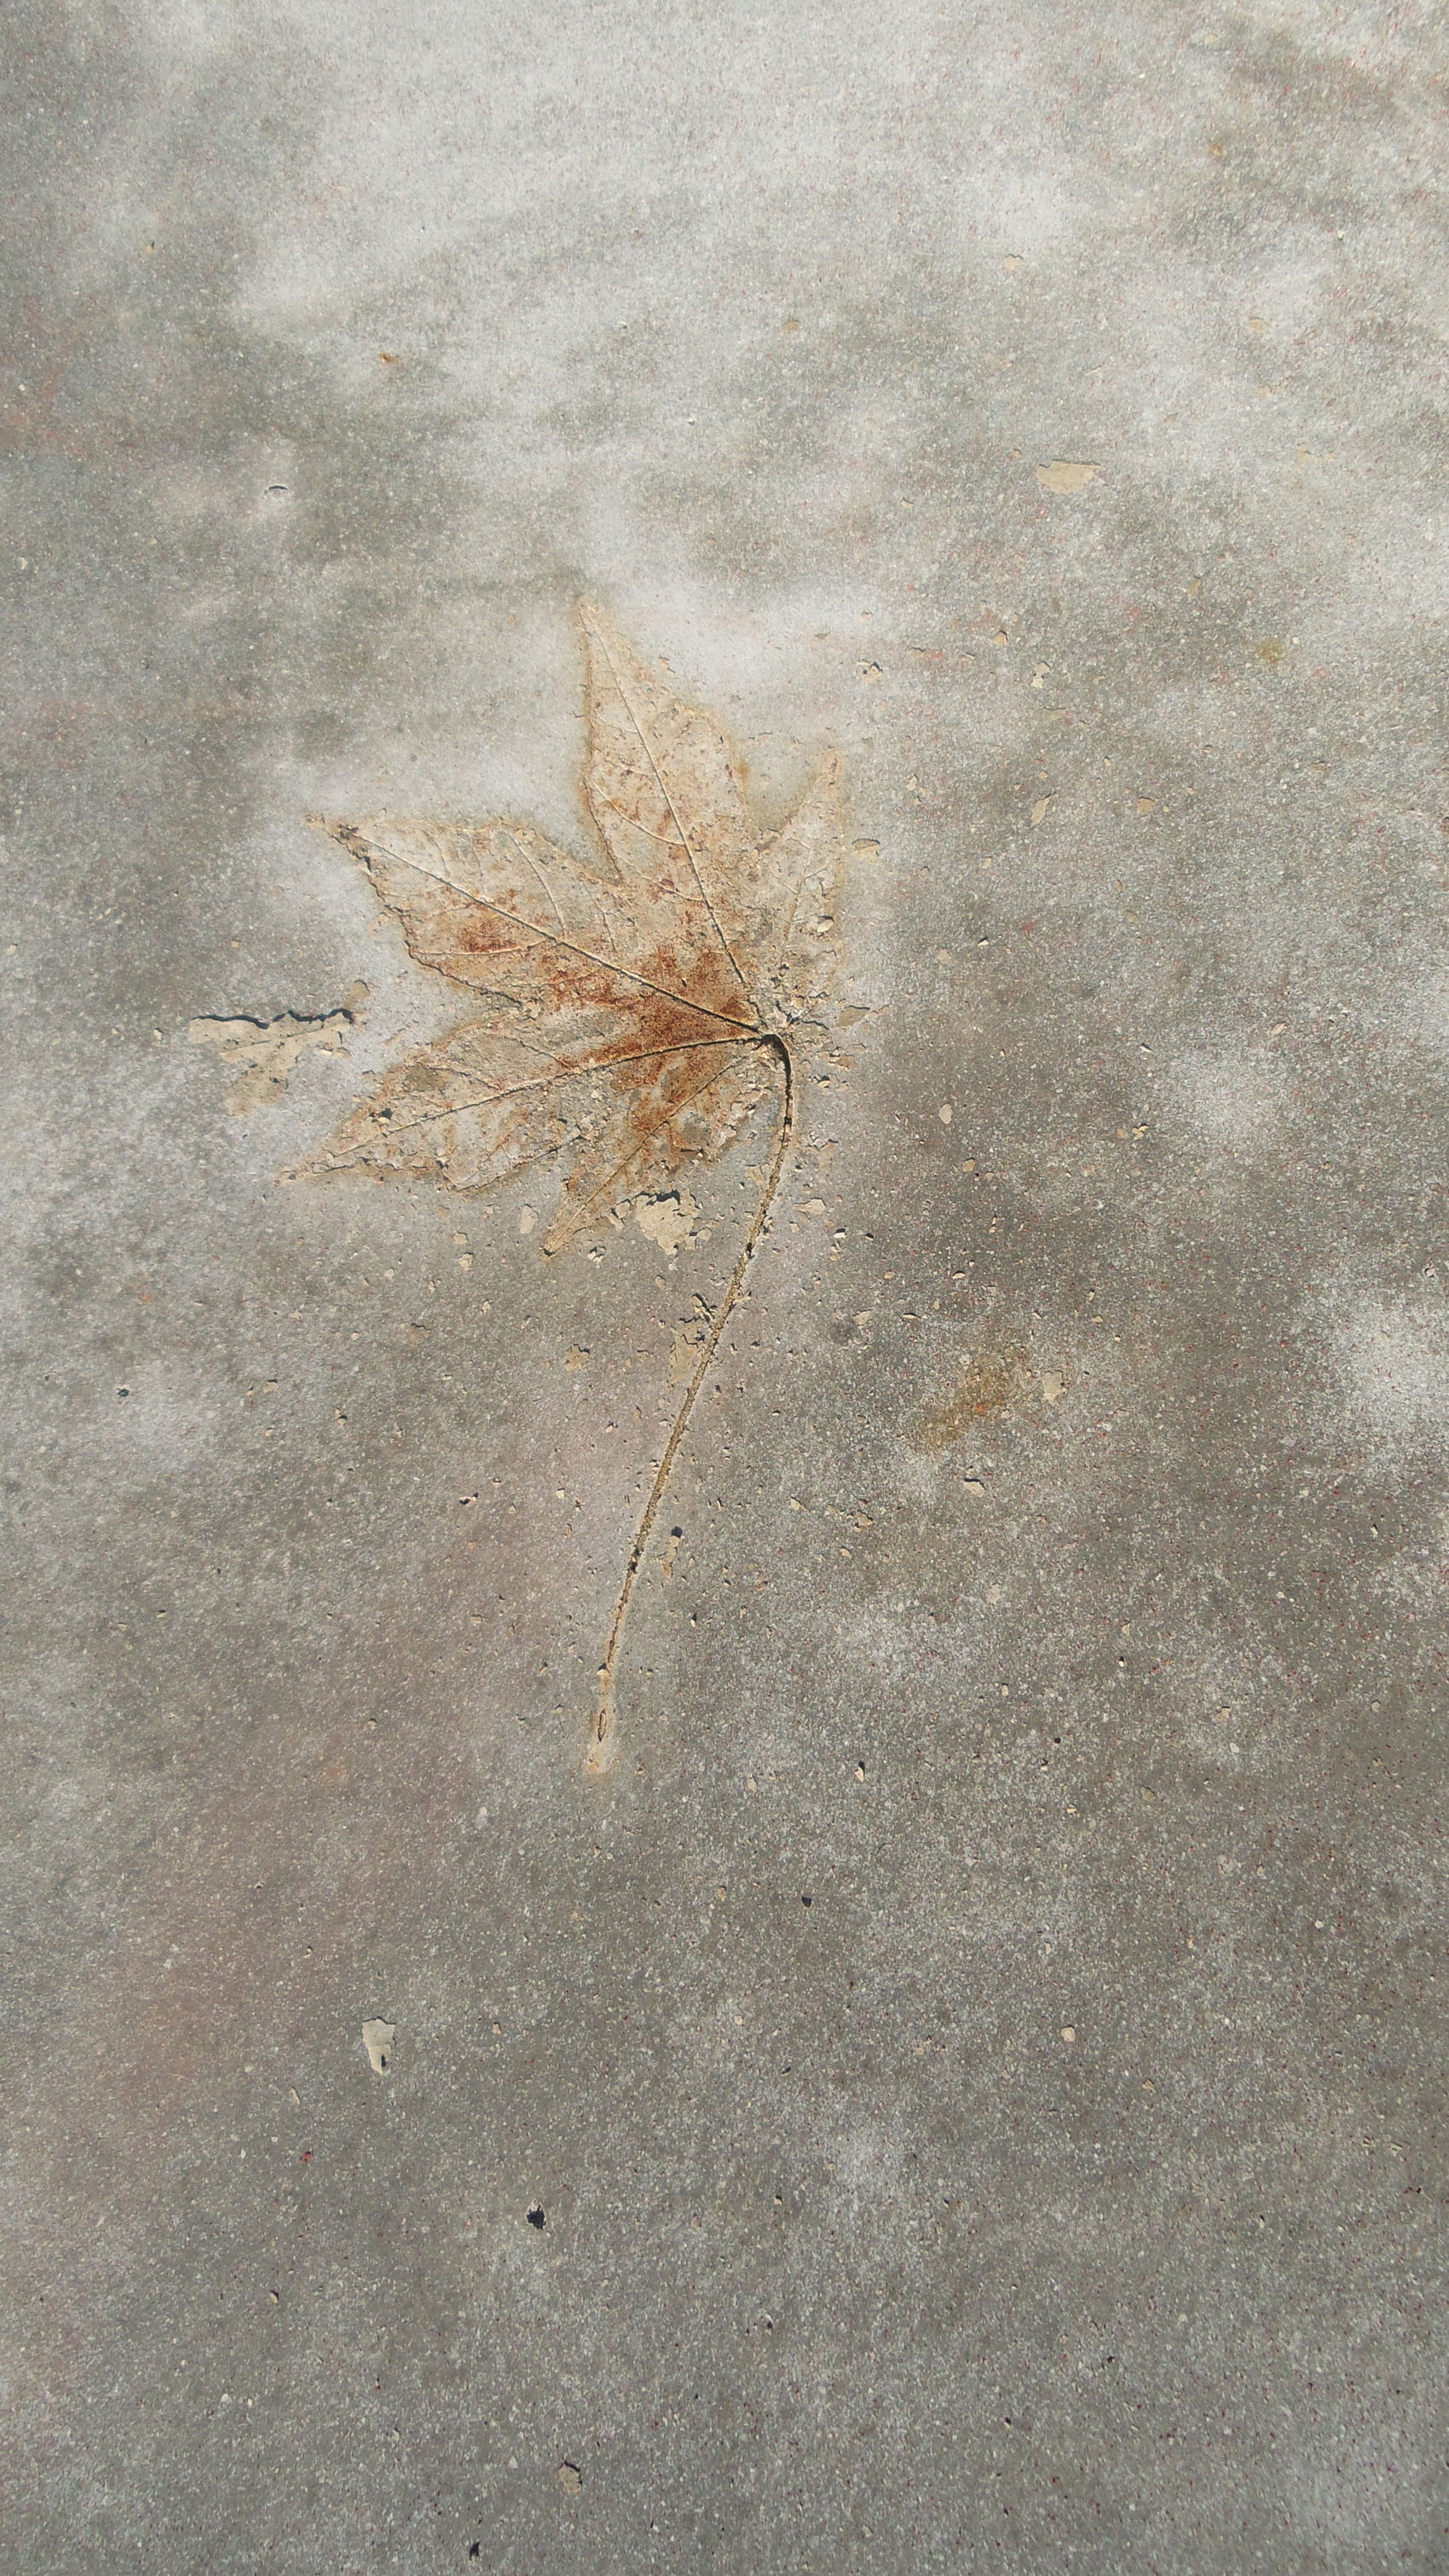 Textures And Surfaces maple leaf fell on fresh poured concrete, lift it off and it left its imprint on it....